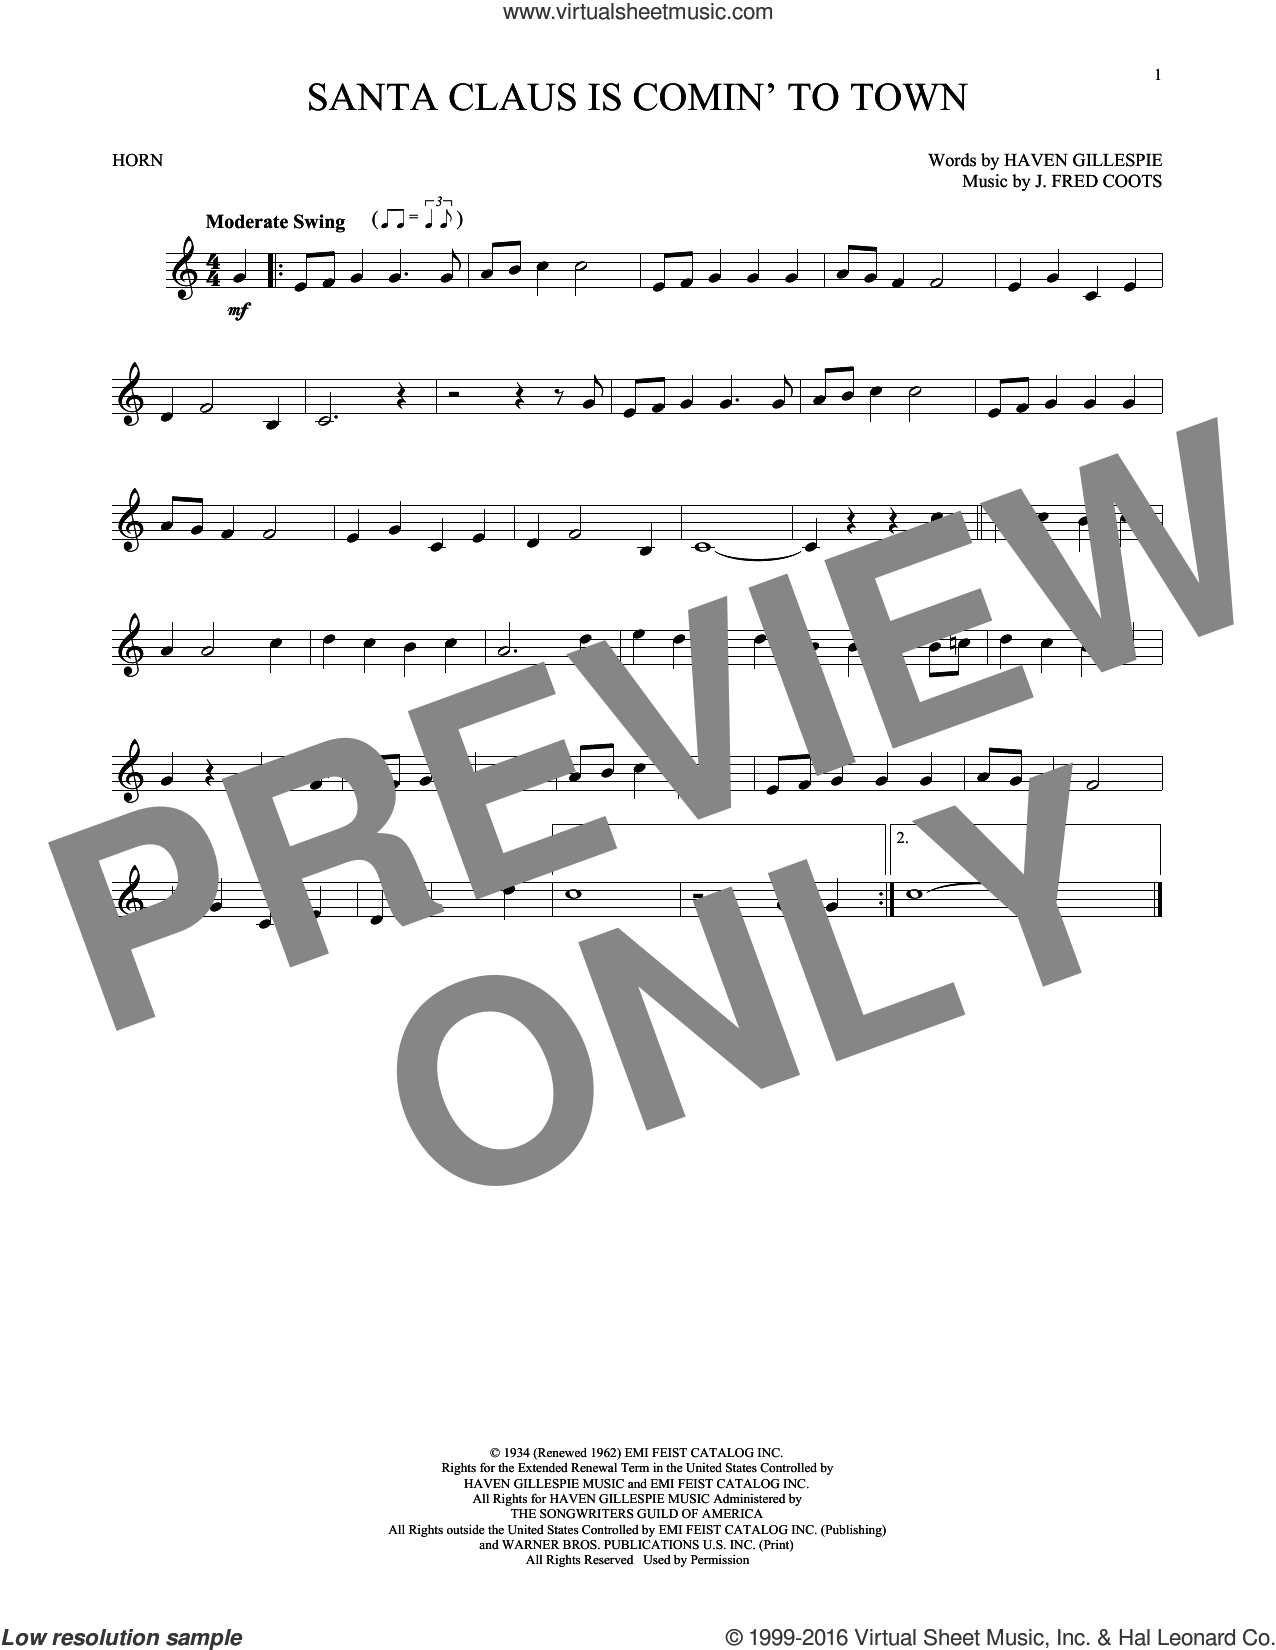 Santa Claus Is Comin' To Town sheet music for horn solo by J. Fred Coots and Haven Gillespie, intermediate